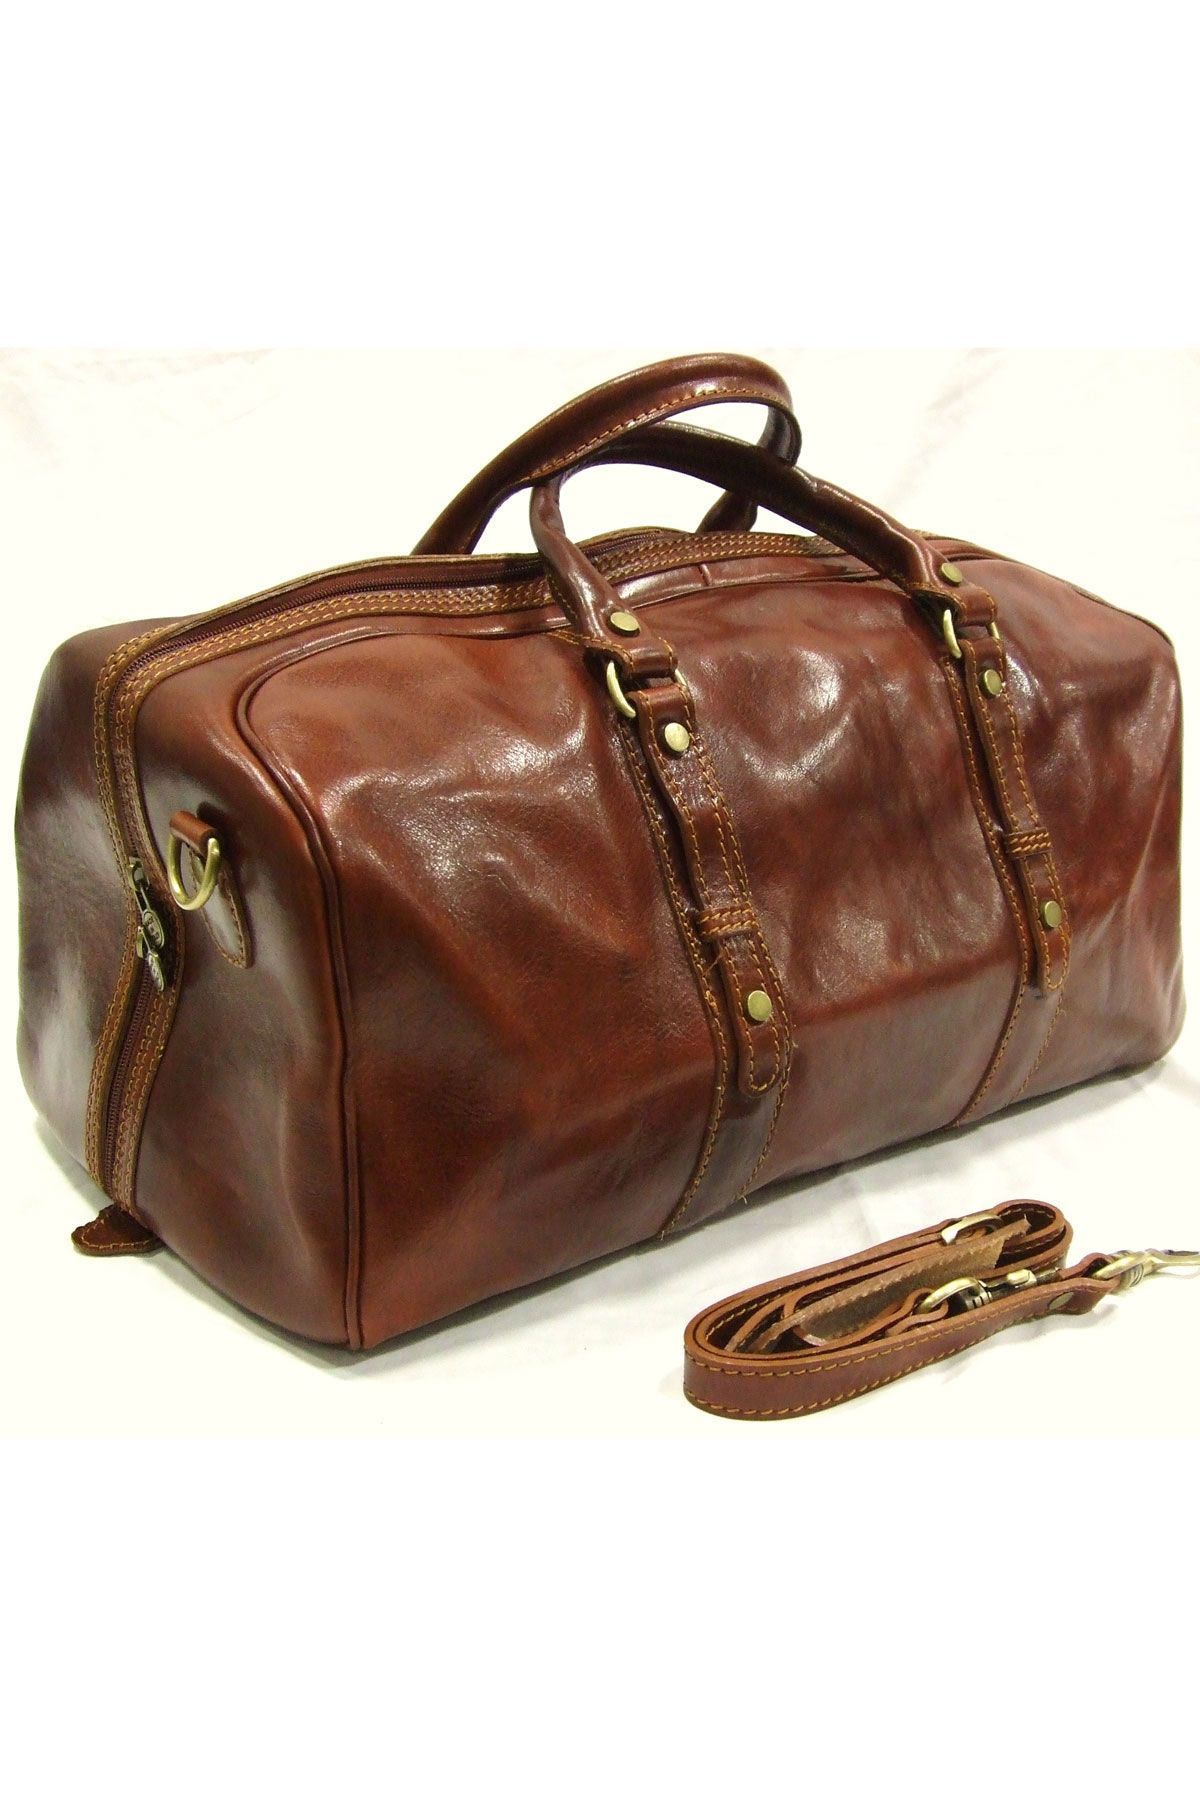 Italian Leather Travel Bag by Woodland Leather  e7c4a2cd906e6